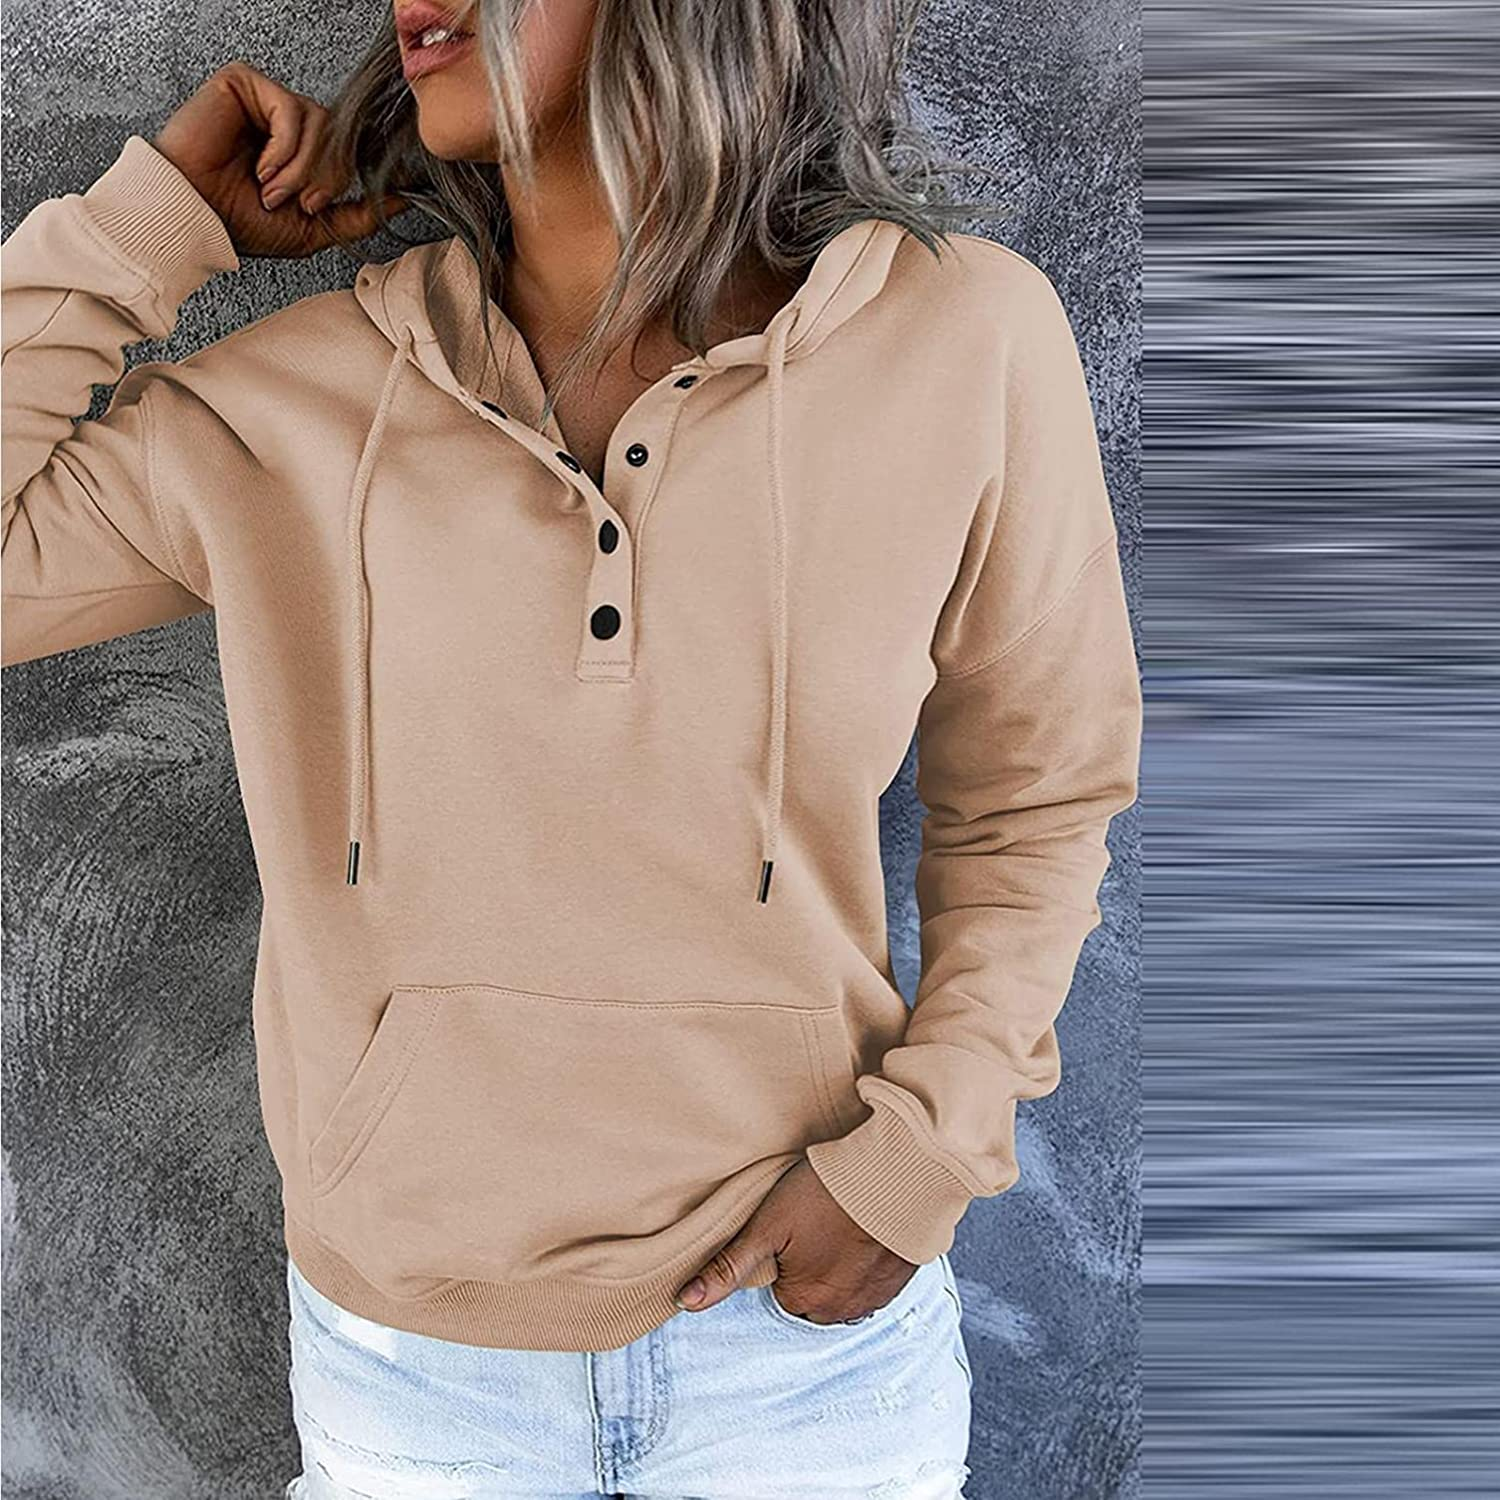 UOCUFY Hoodies for Women, Womens Casual Halloween Hoodie Sweatshirts Long Sleeve Pullover Hooded Tops with Pockets